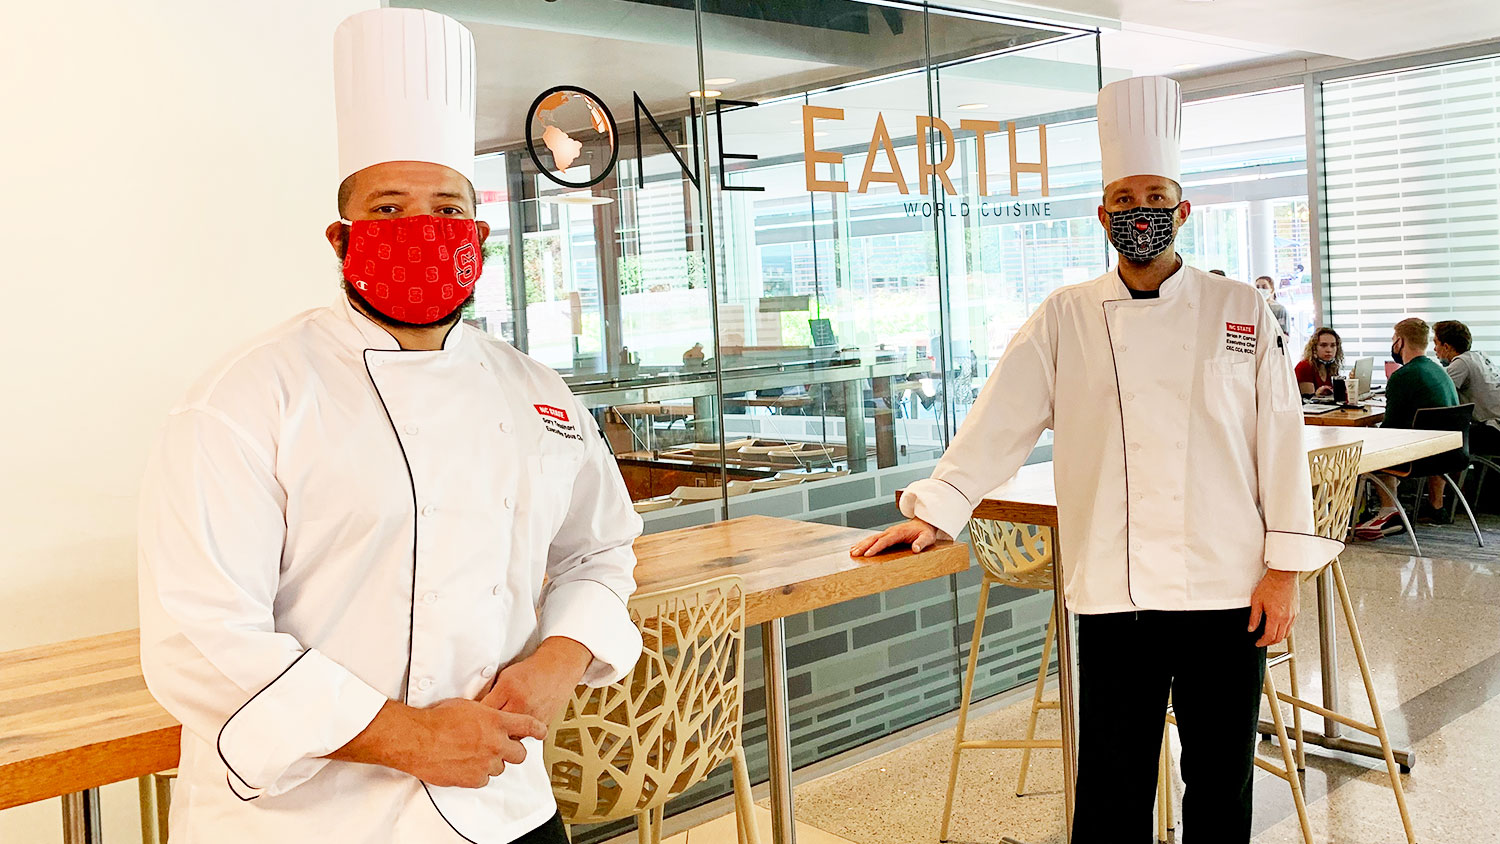 two chefs standing in front of One Earth restaurant